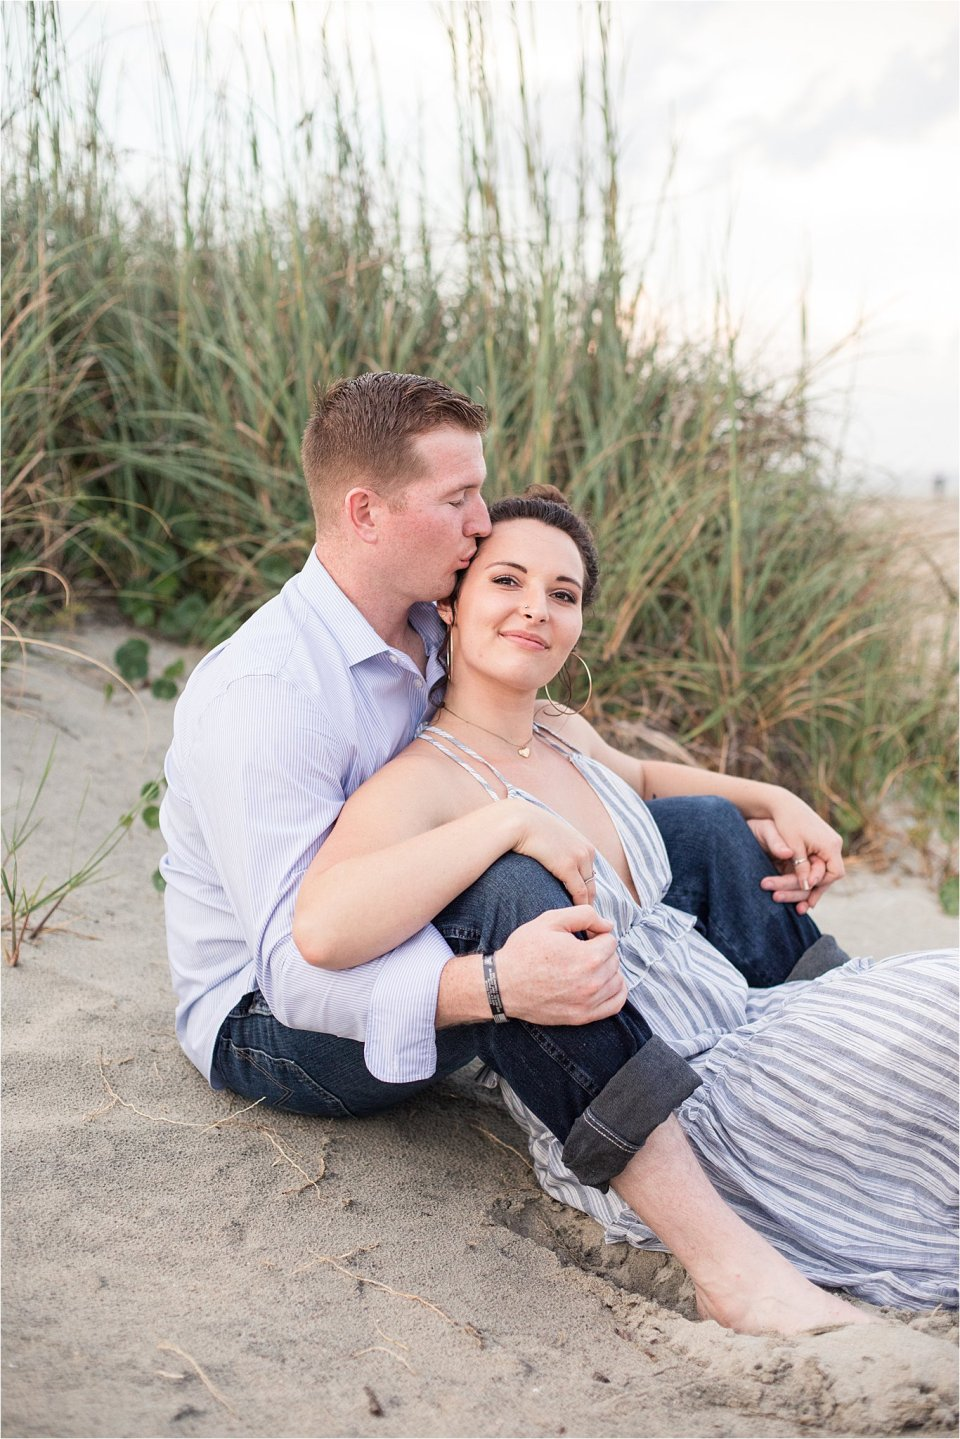 Tybee island engagement photography at sunset